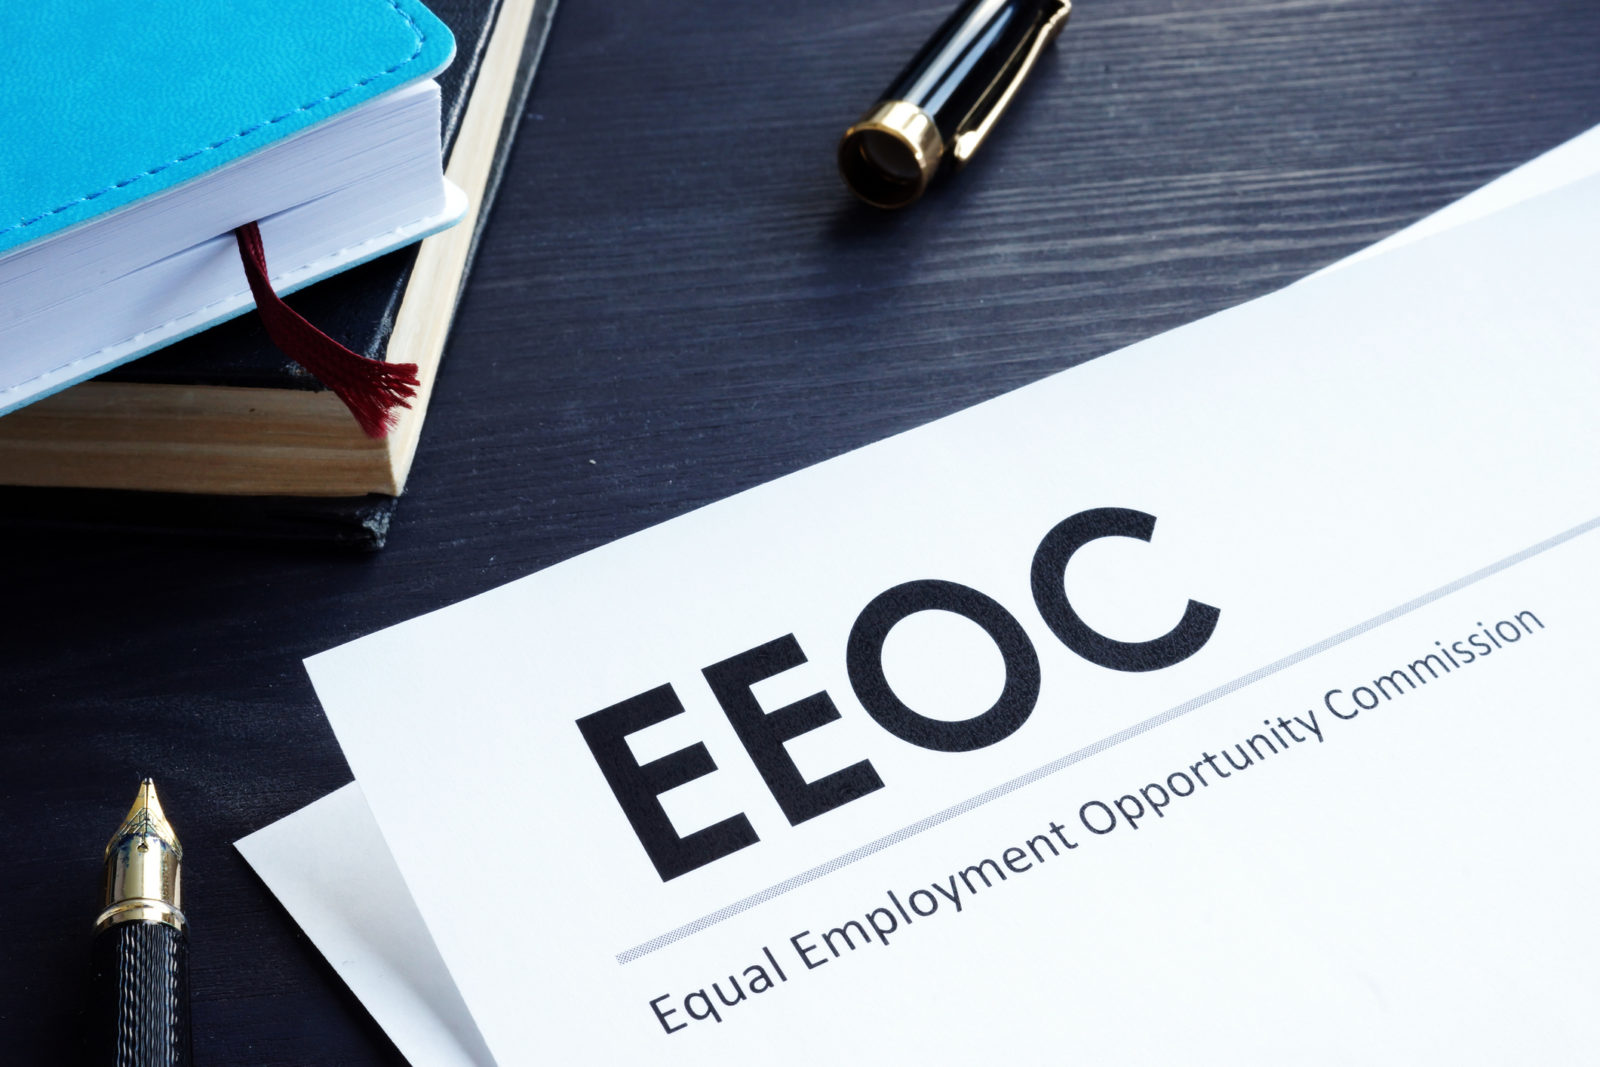 Equal Employment Opportunity Commission EEOC document and pen on a table.